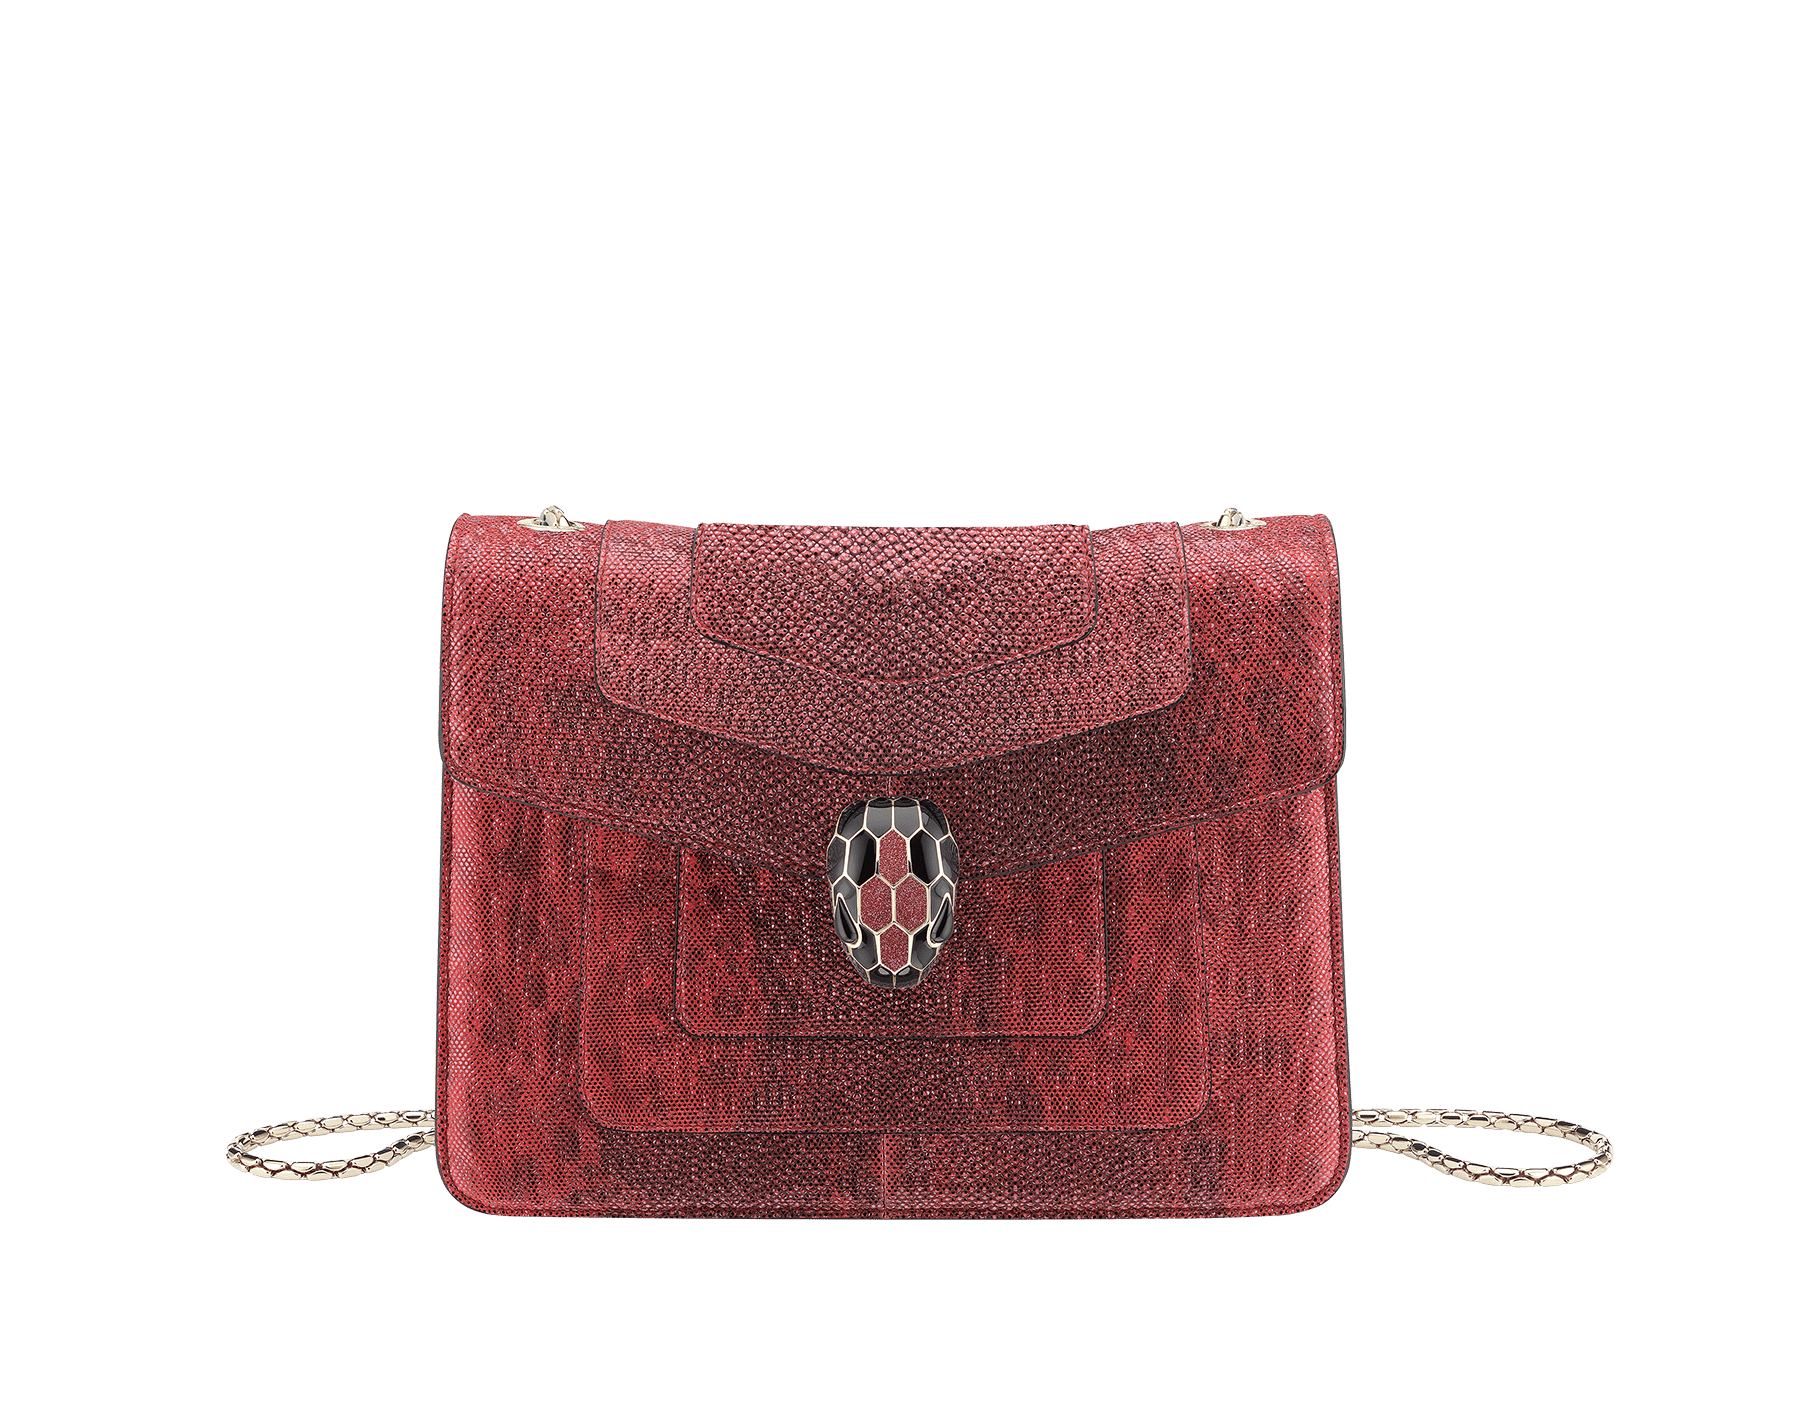 """Serpenti Forever "" crossbody bag in ruby red metallic karung skin. Iconic snakehead closure in light gold plated brass enriched with glitter red and shiny black enamel and black onyx eyes 422-MK image 1"